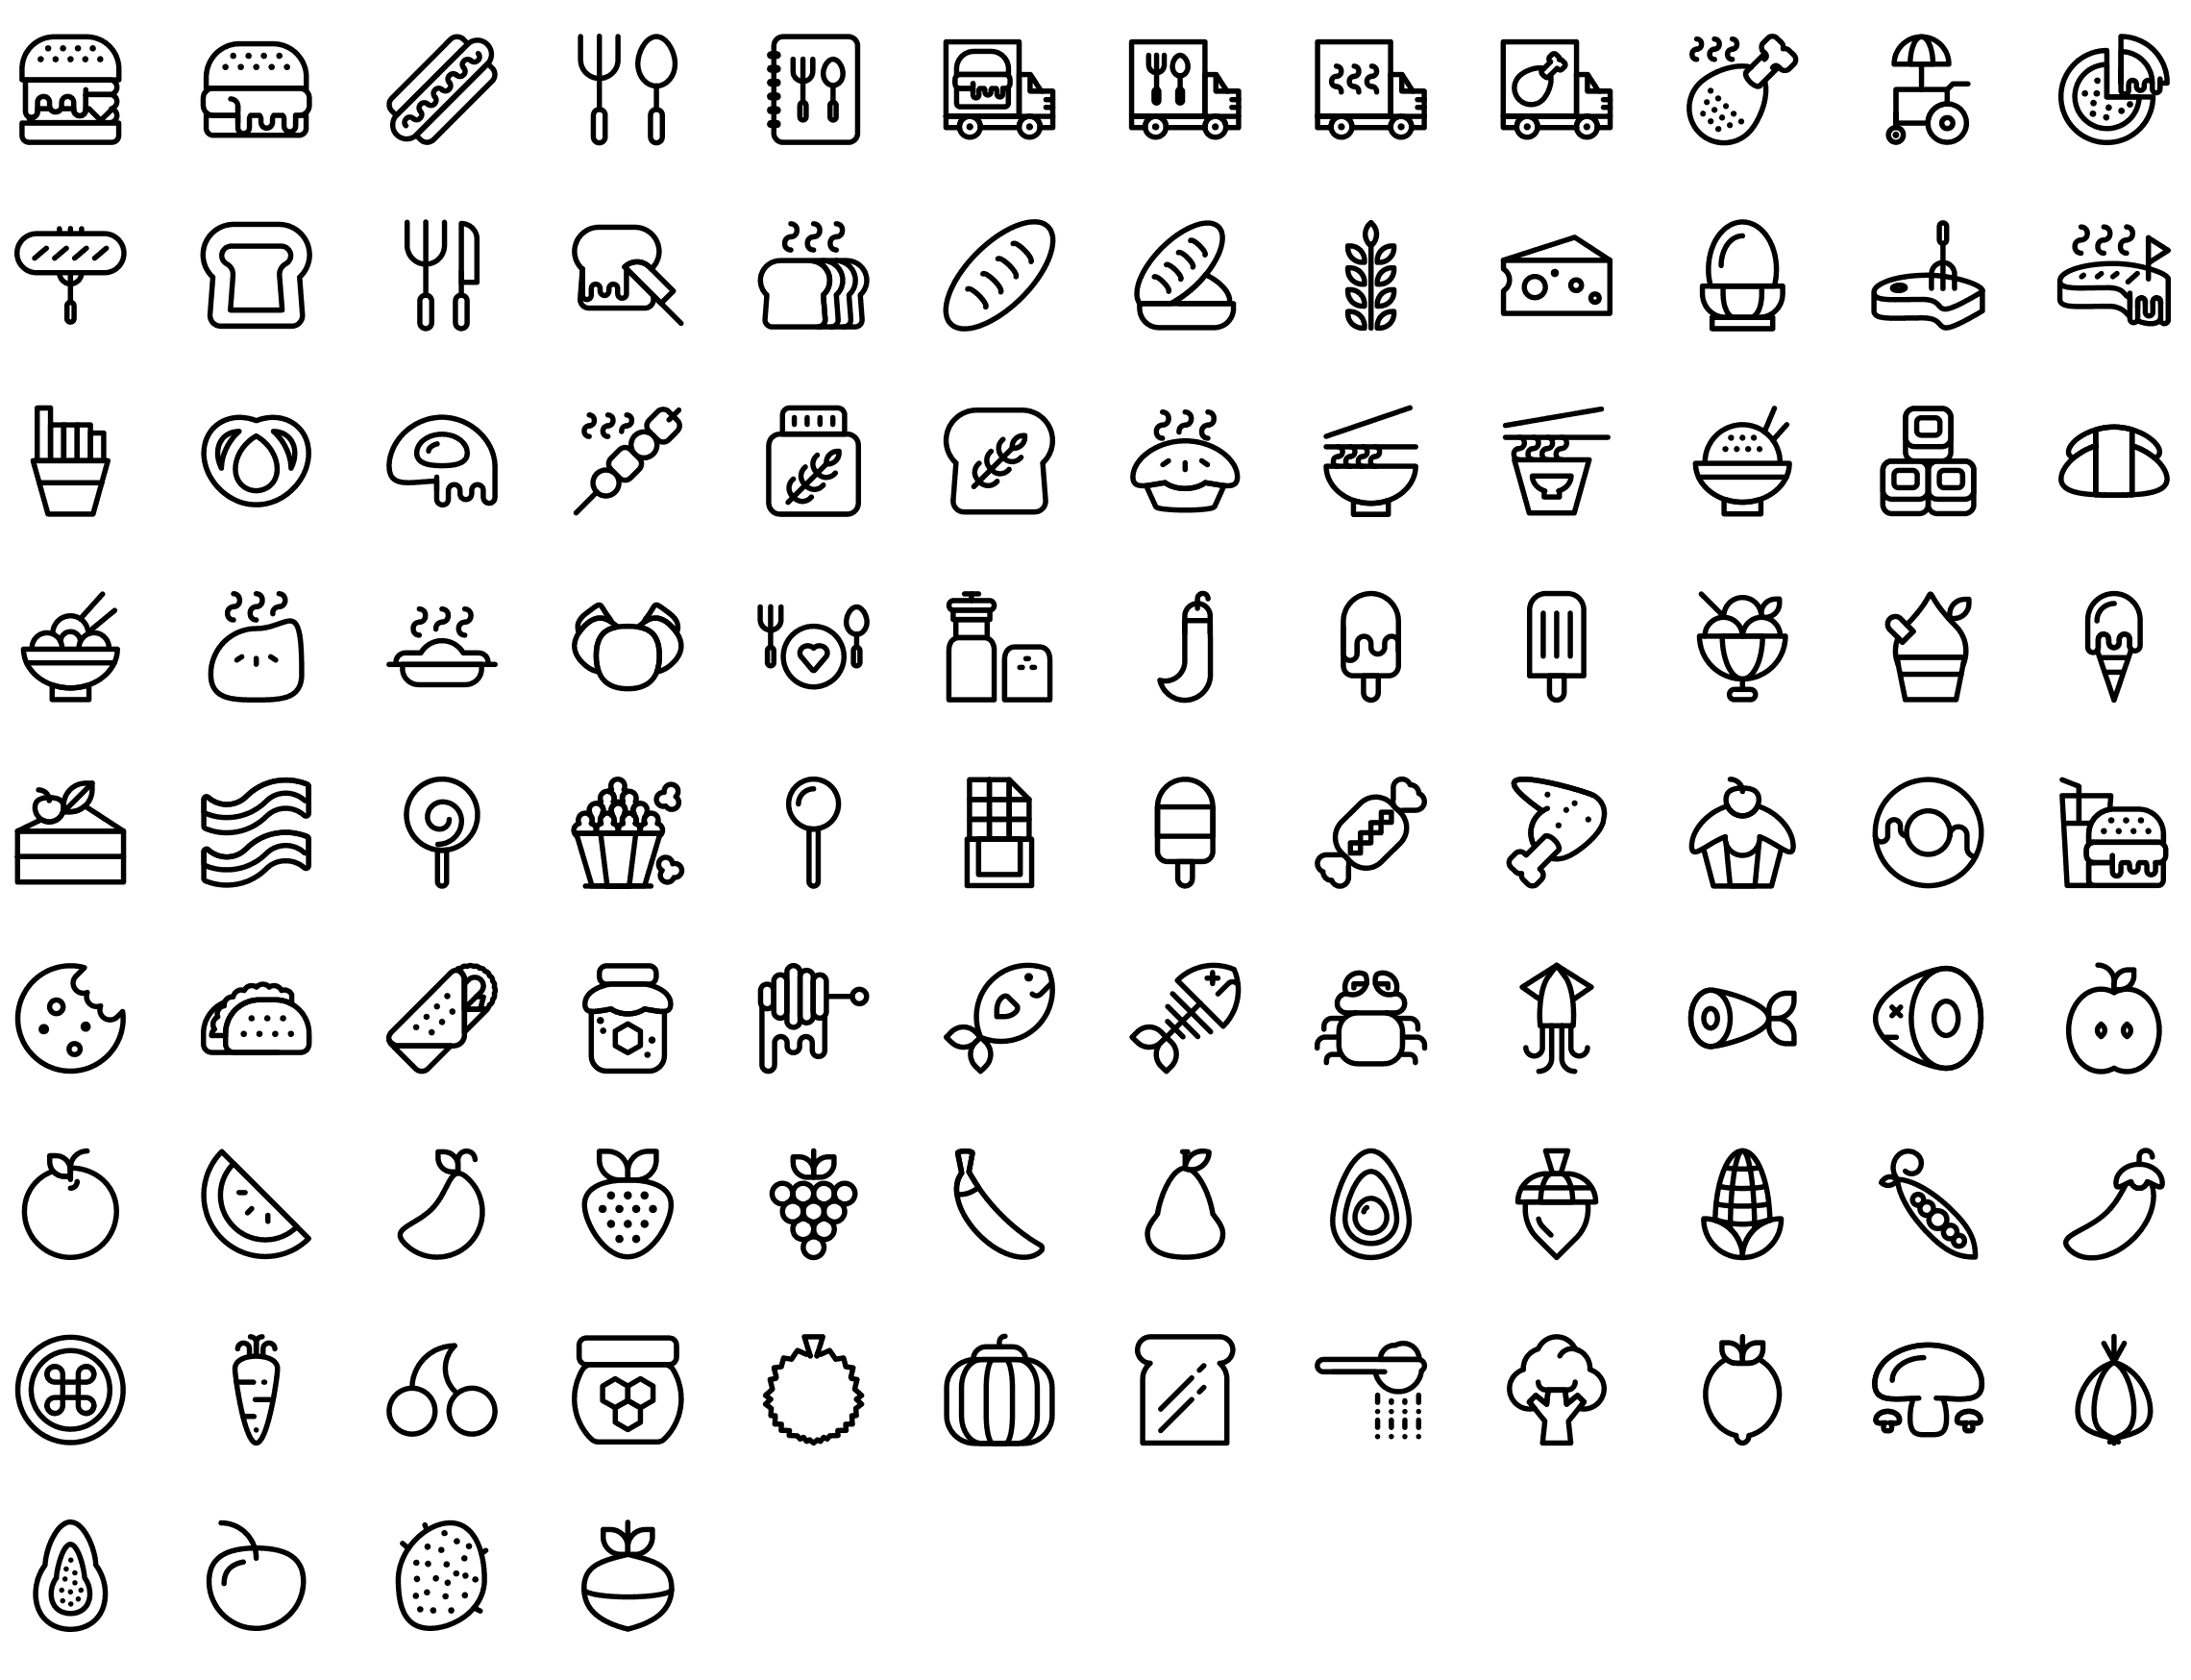 Food line icons preview line and solid icons pinterest icon get above the competition with this massive line icons pack 109 categories containing icons made for websites ios and android apps biocorpaavc Images